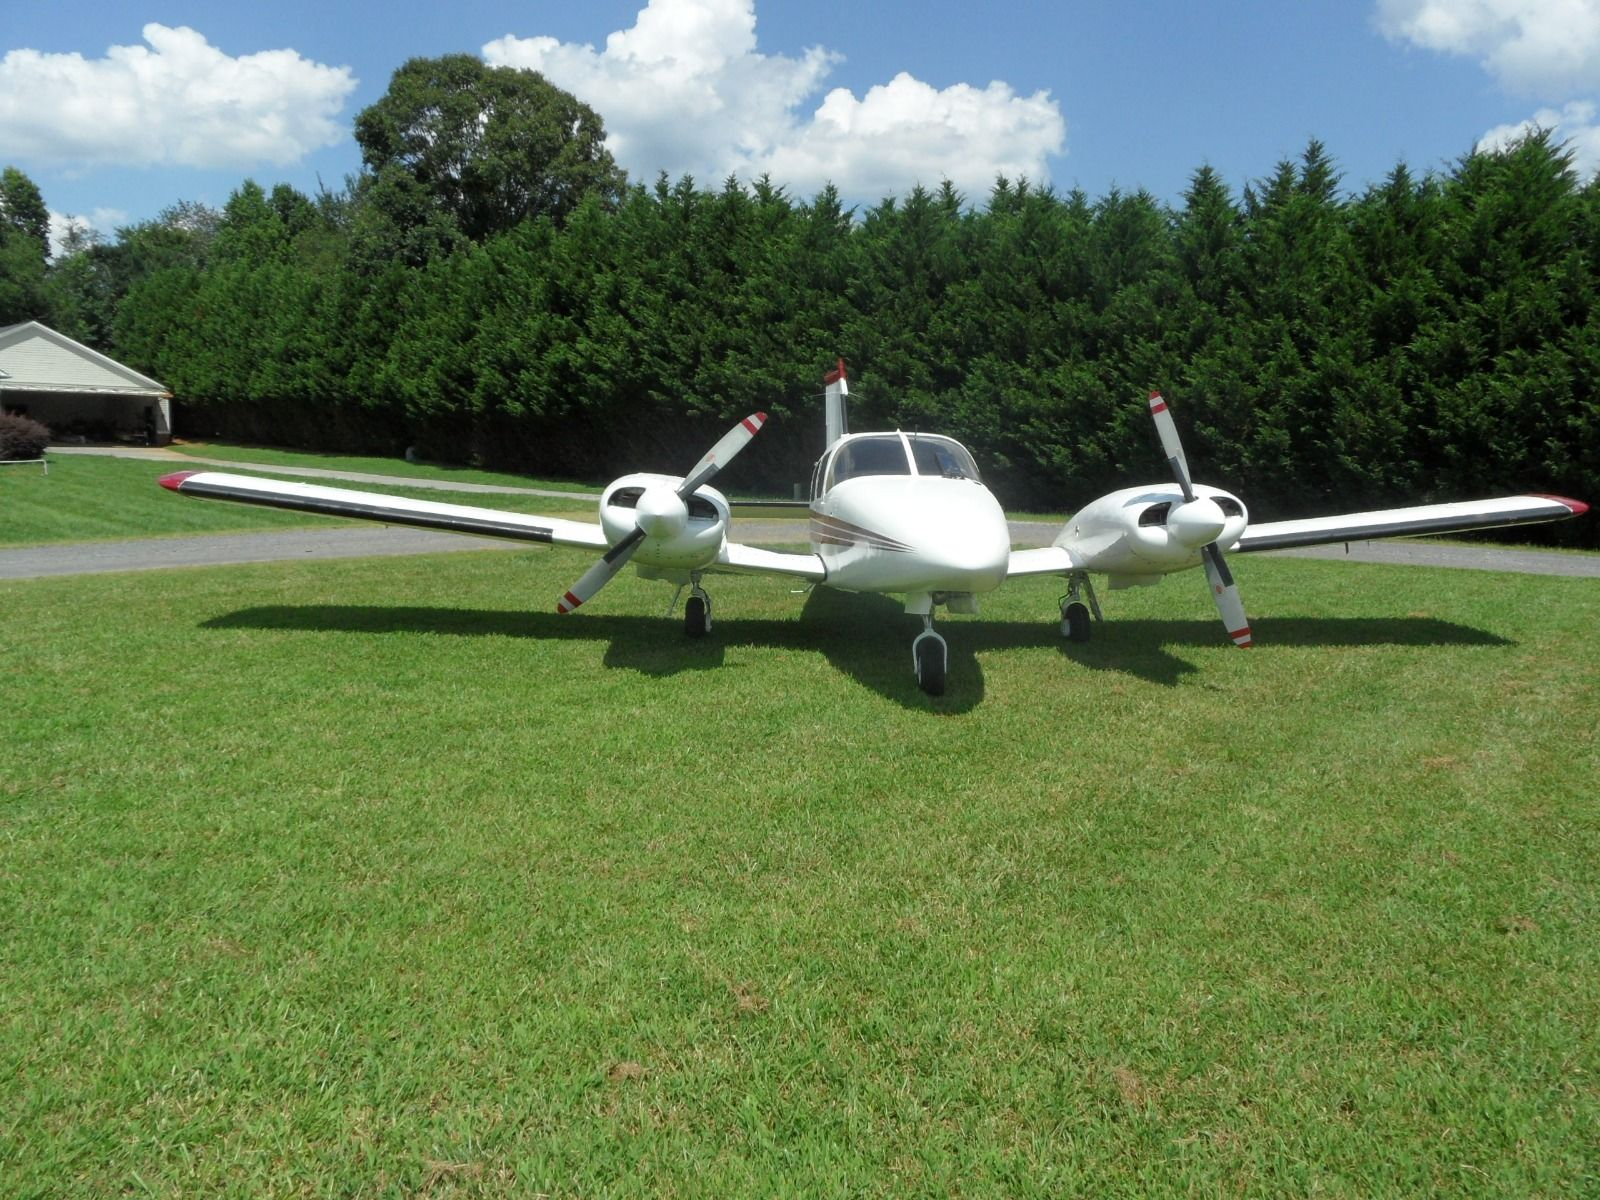 previously damaged 1975 Piper Seneca II aircraft for sale